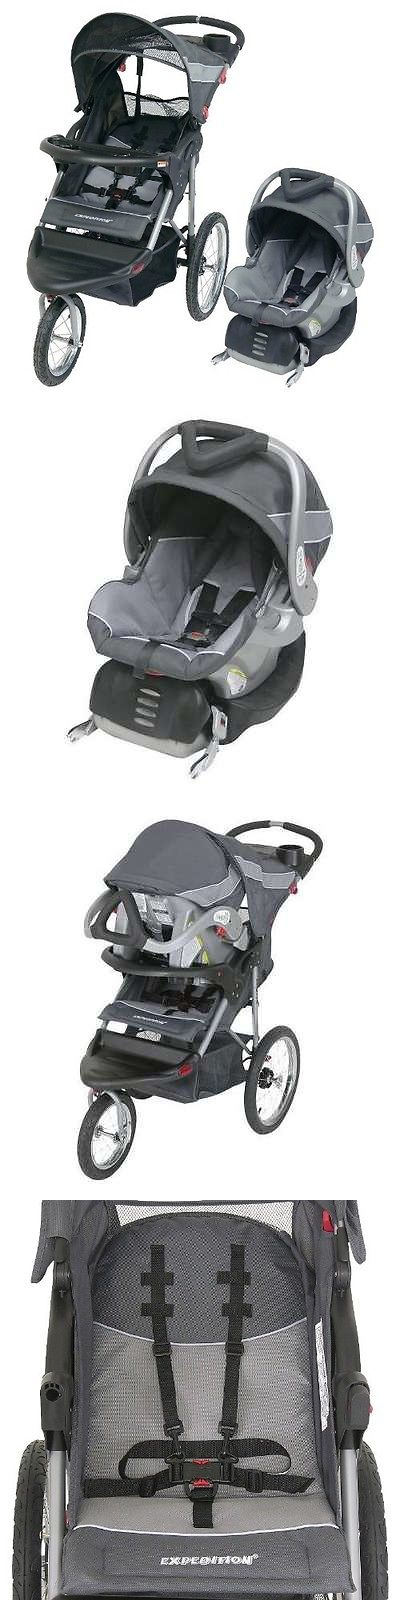 Baby Trend Expedition Jogger Jogging Stroller